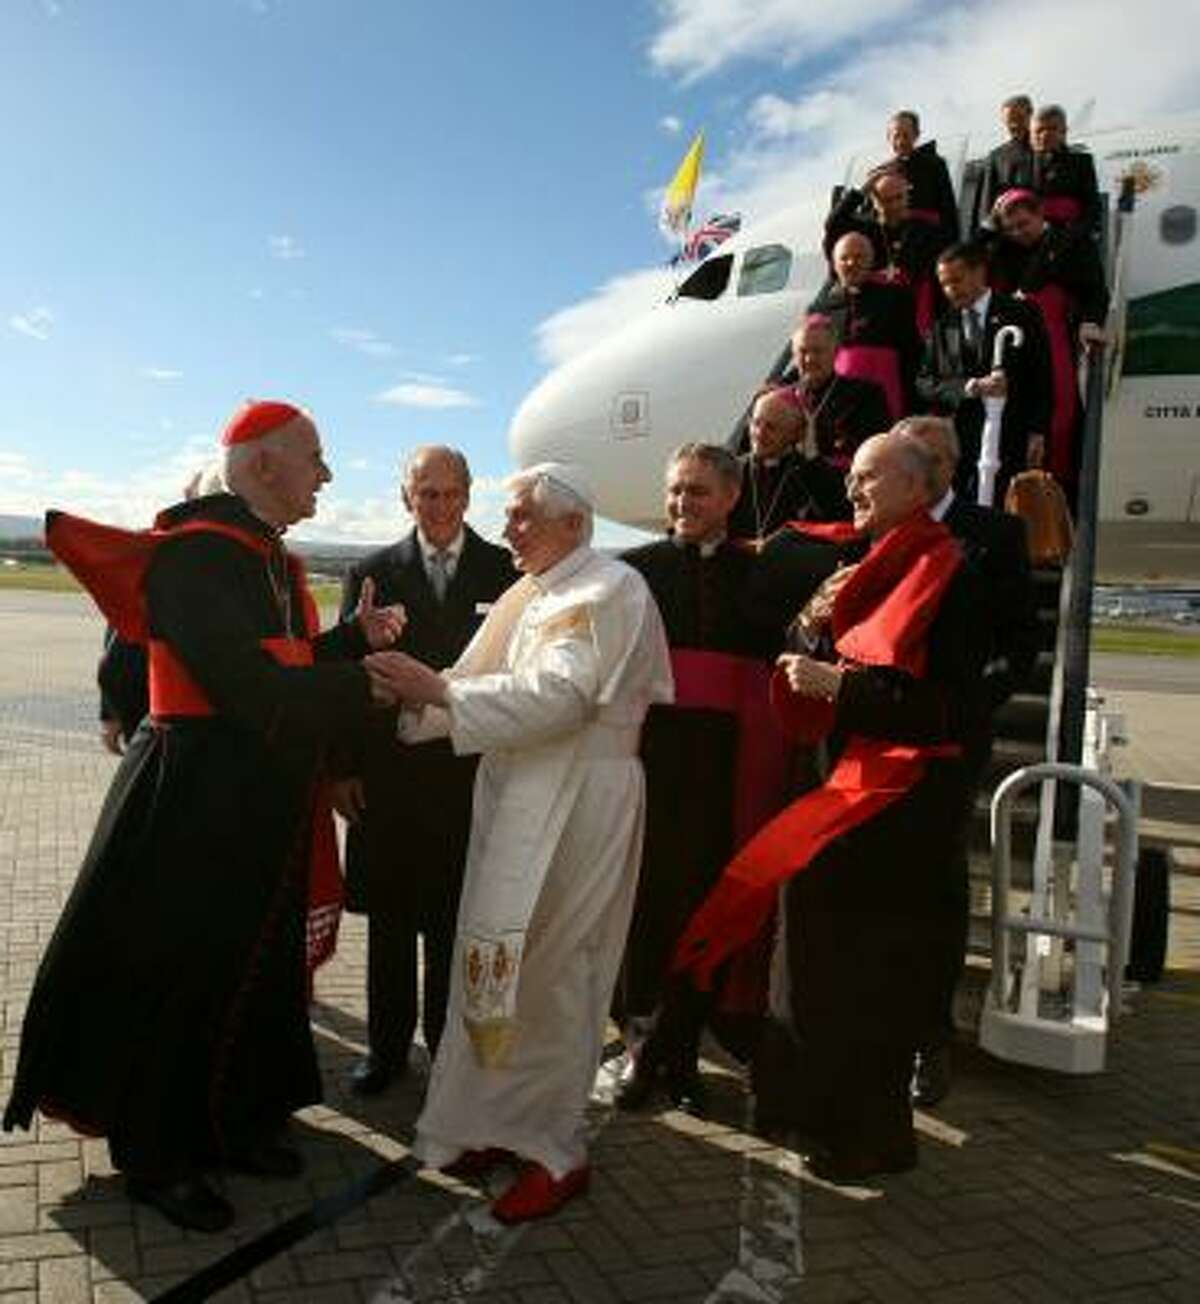 Cardinal Keith O'Brien greets Pope Benedict XVI at Edinburgh Airport in Scotland. During the four-day visit Pope Benedict will celebrate mass, conduct a prayer vigil and beatify Cardinal Newman at an open air mass in Cofton Park. The Pope is also set to meet with the Queen, as well as political and religious representatives.